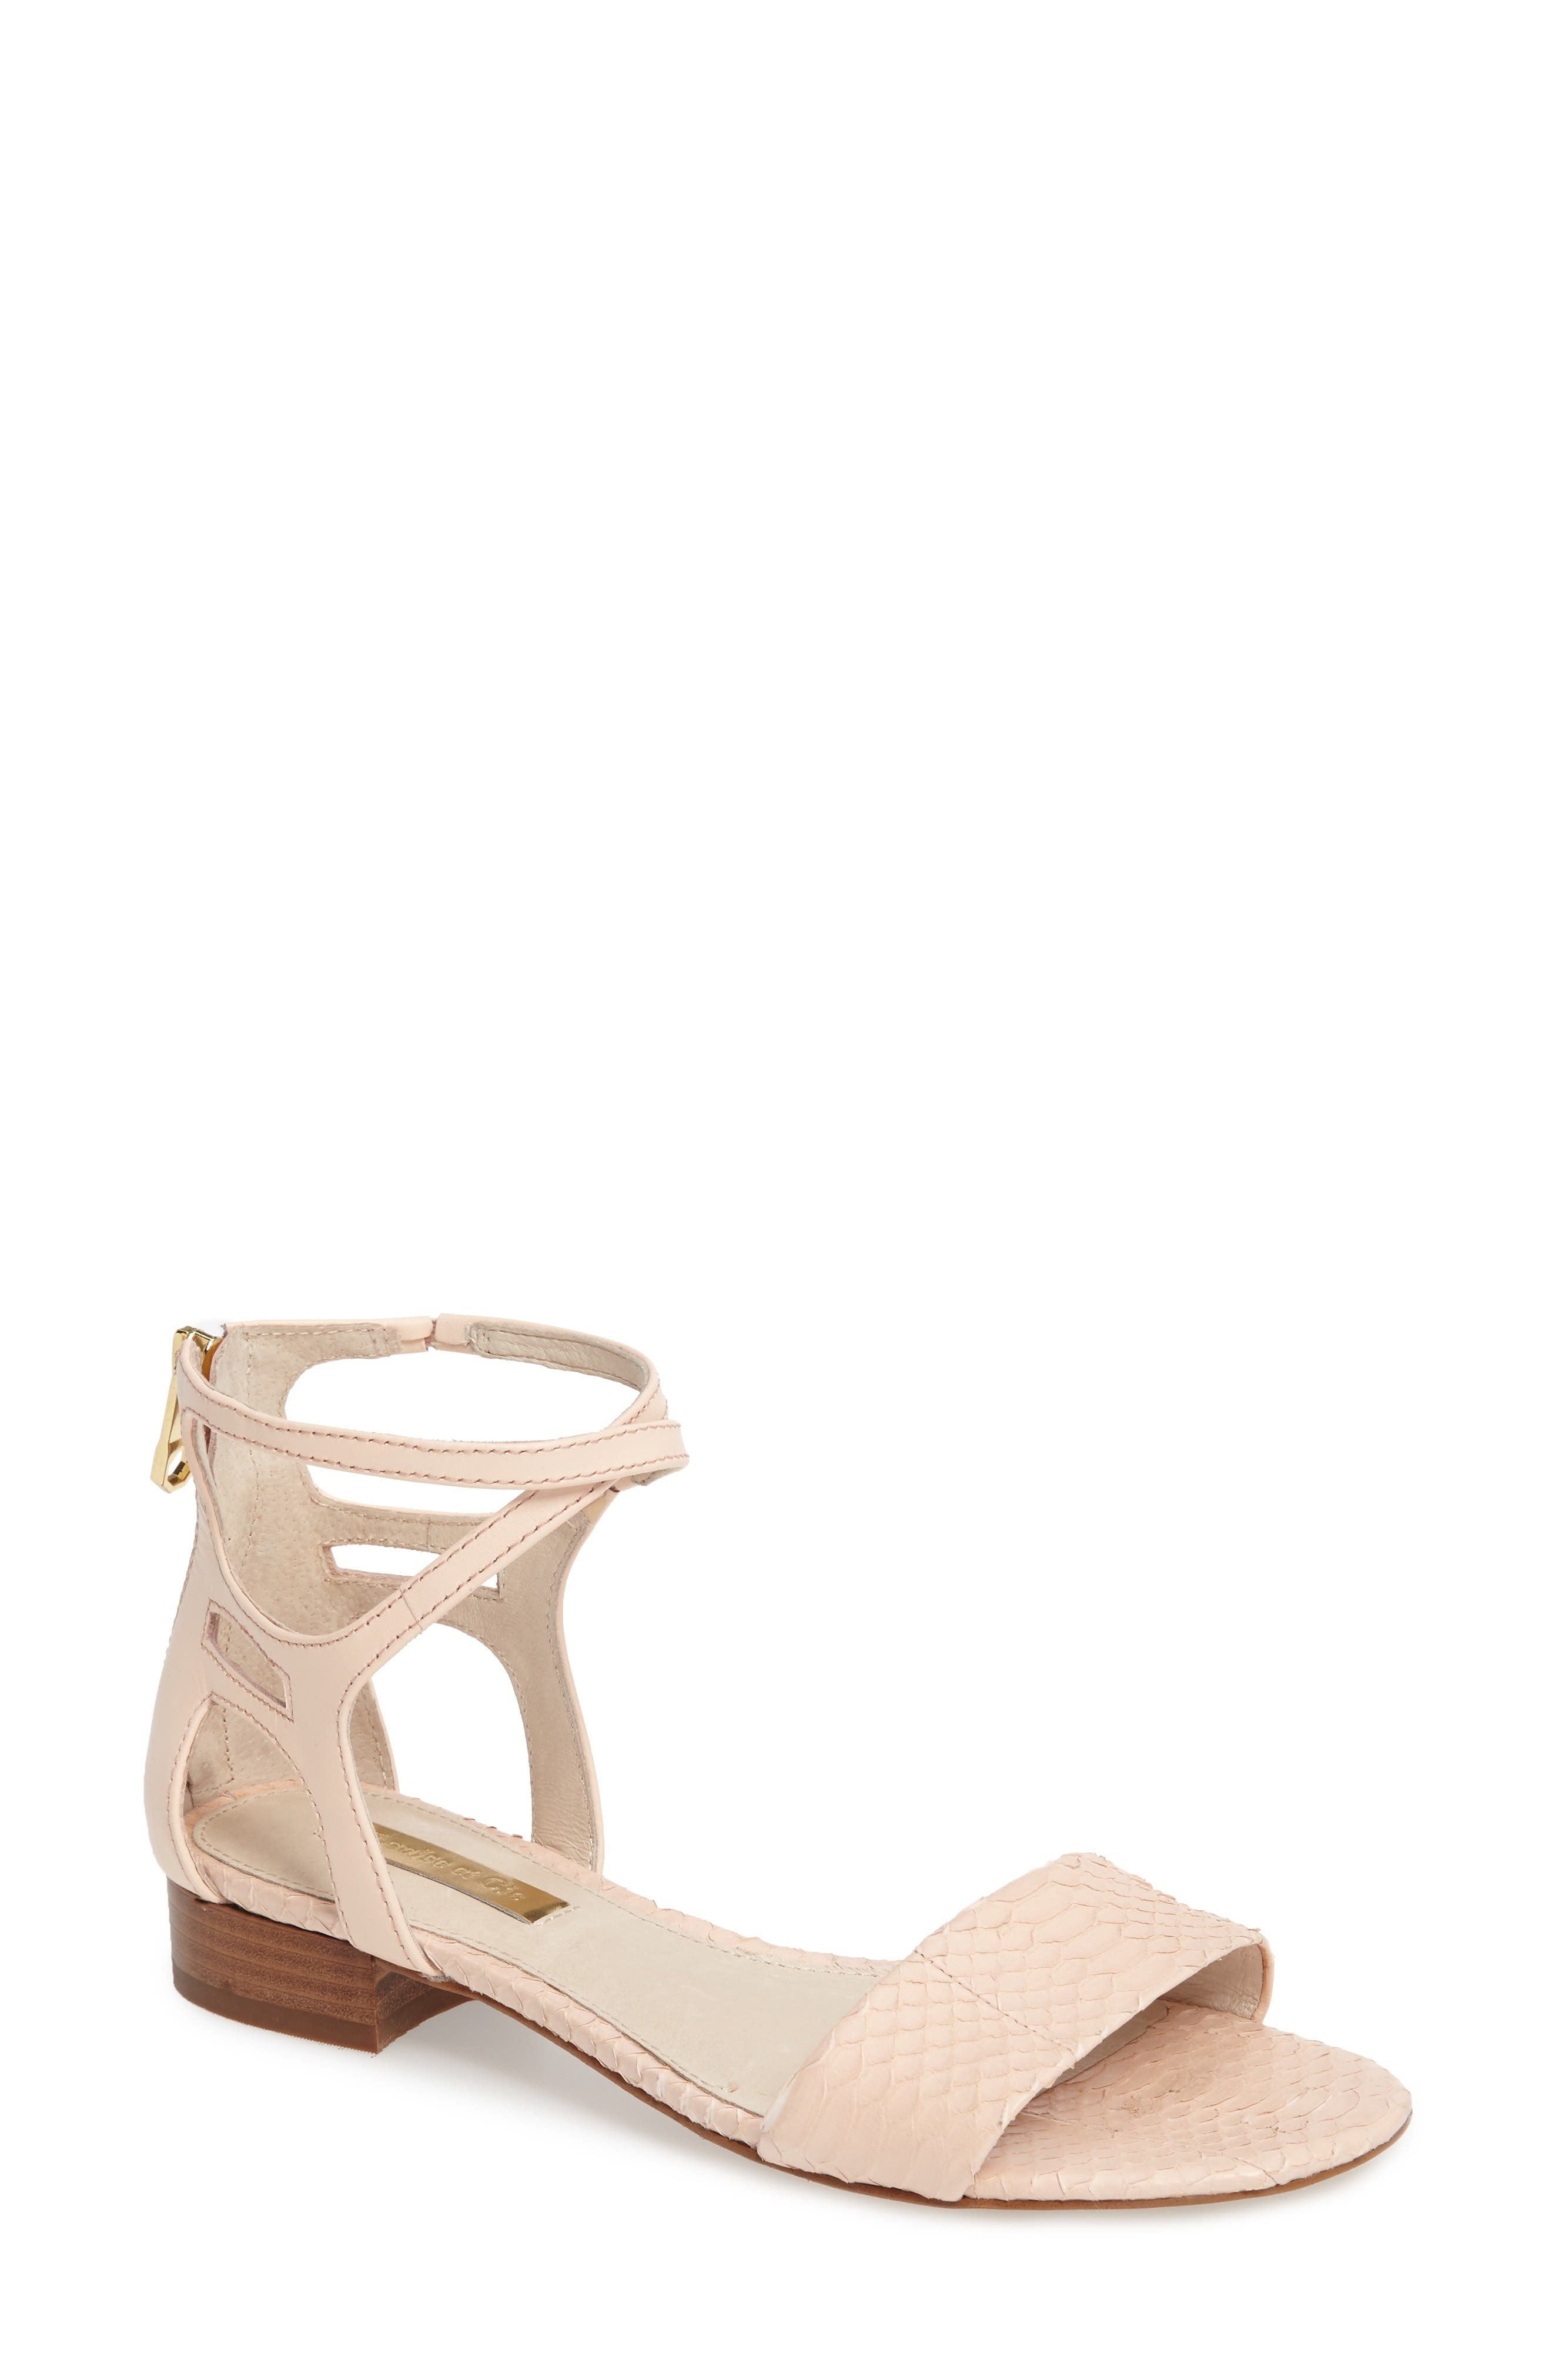 Adley Ankle Strap Sandal,                         Main,                         color, Mimosa Leather